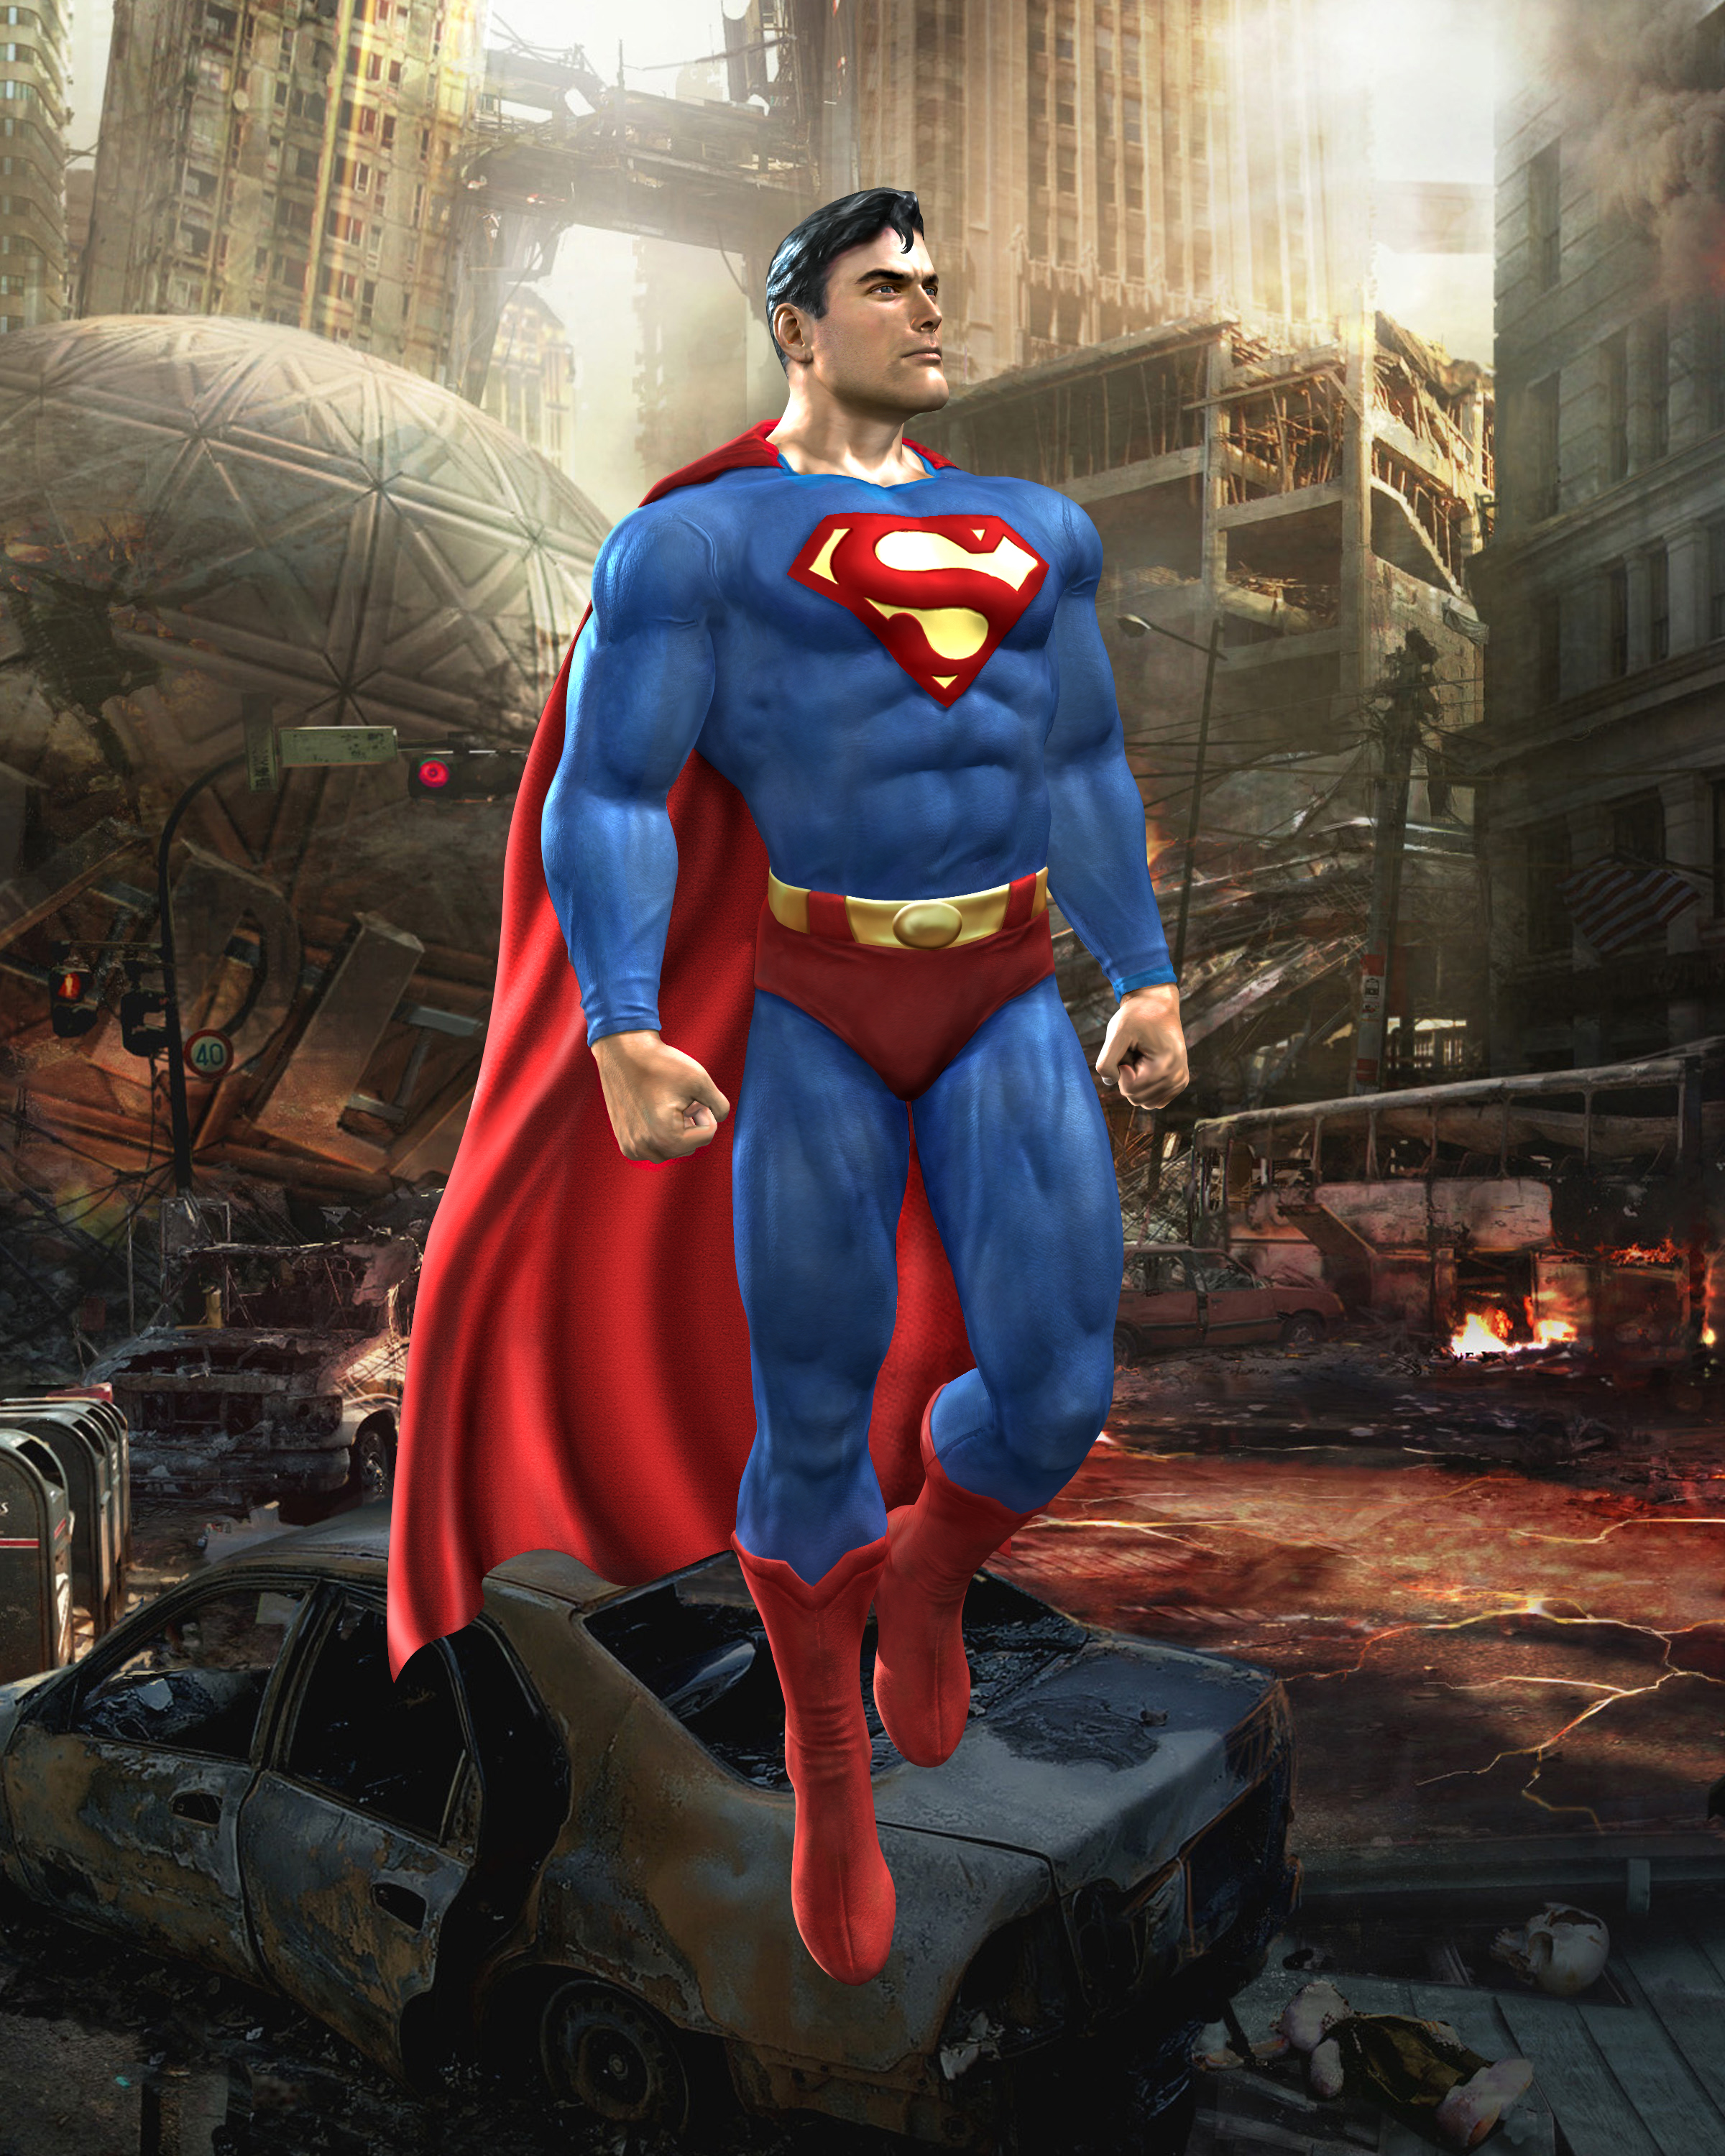 Random Heros Images Superman HD Wallpaper And Background Photos